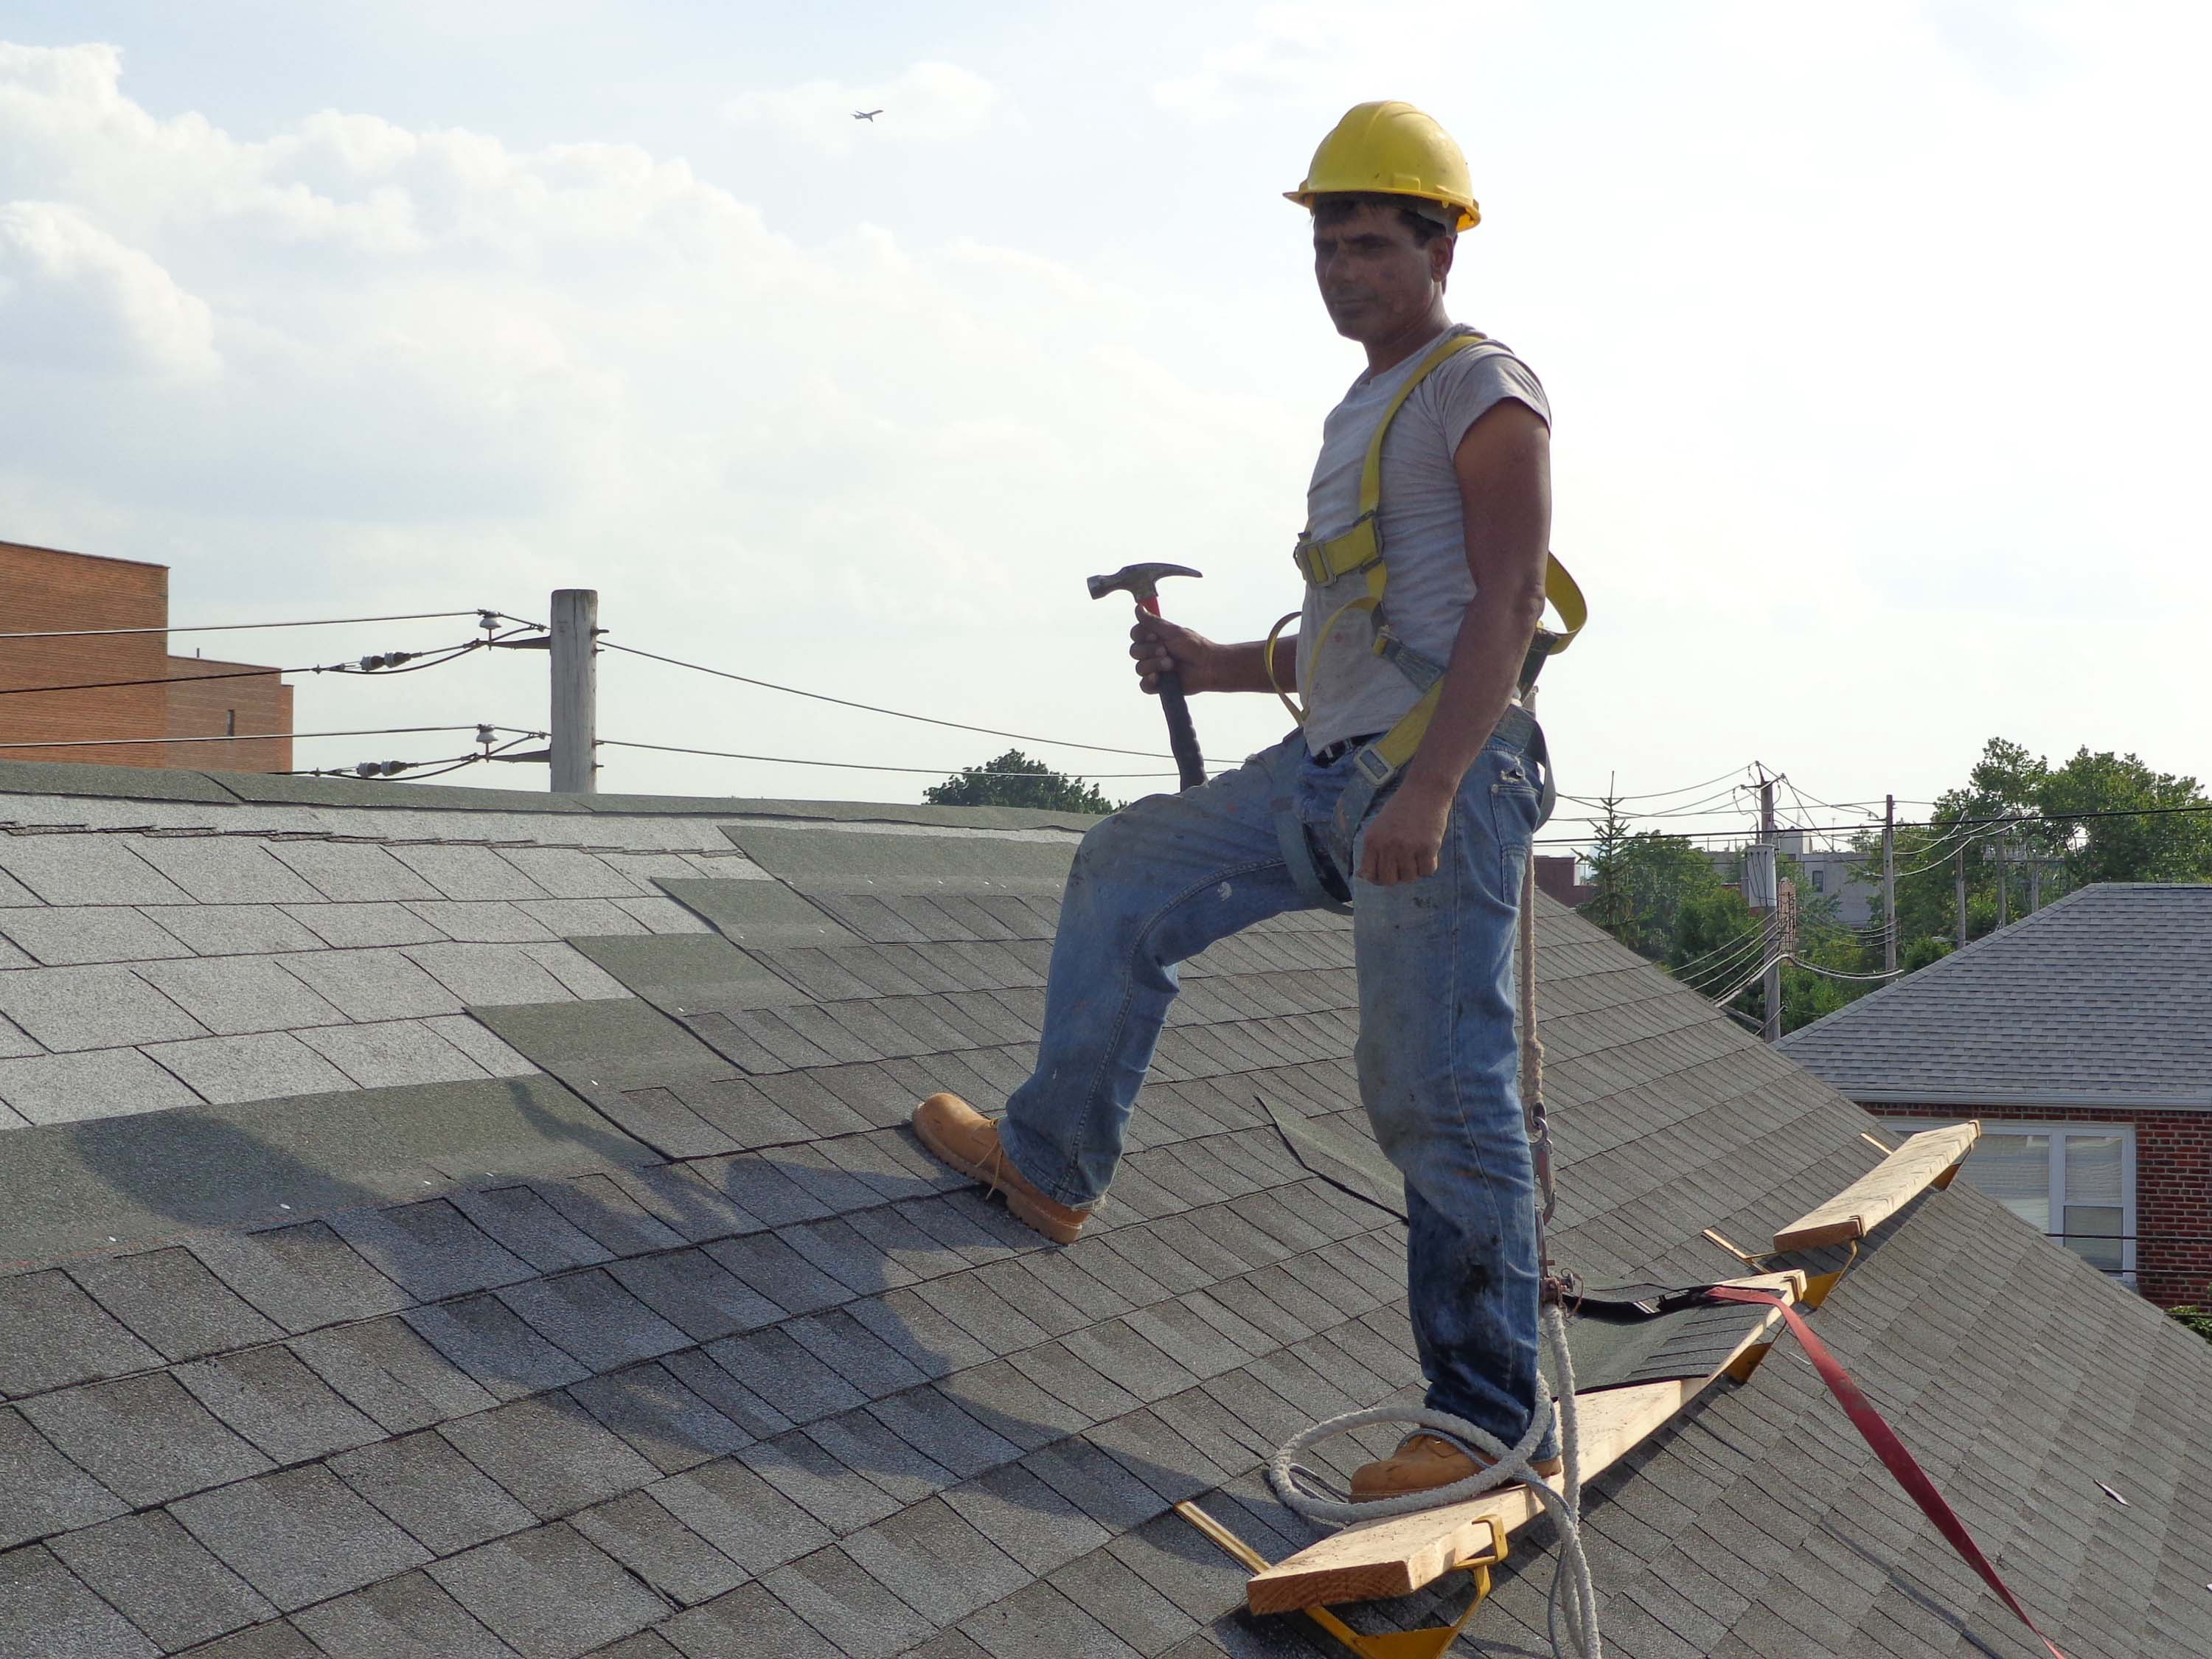 Roofing Renovation Service in New York | by Zk Contracting | Medium